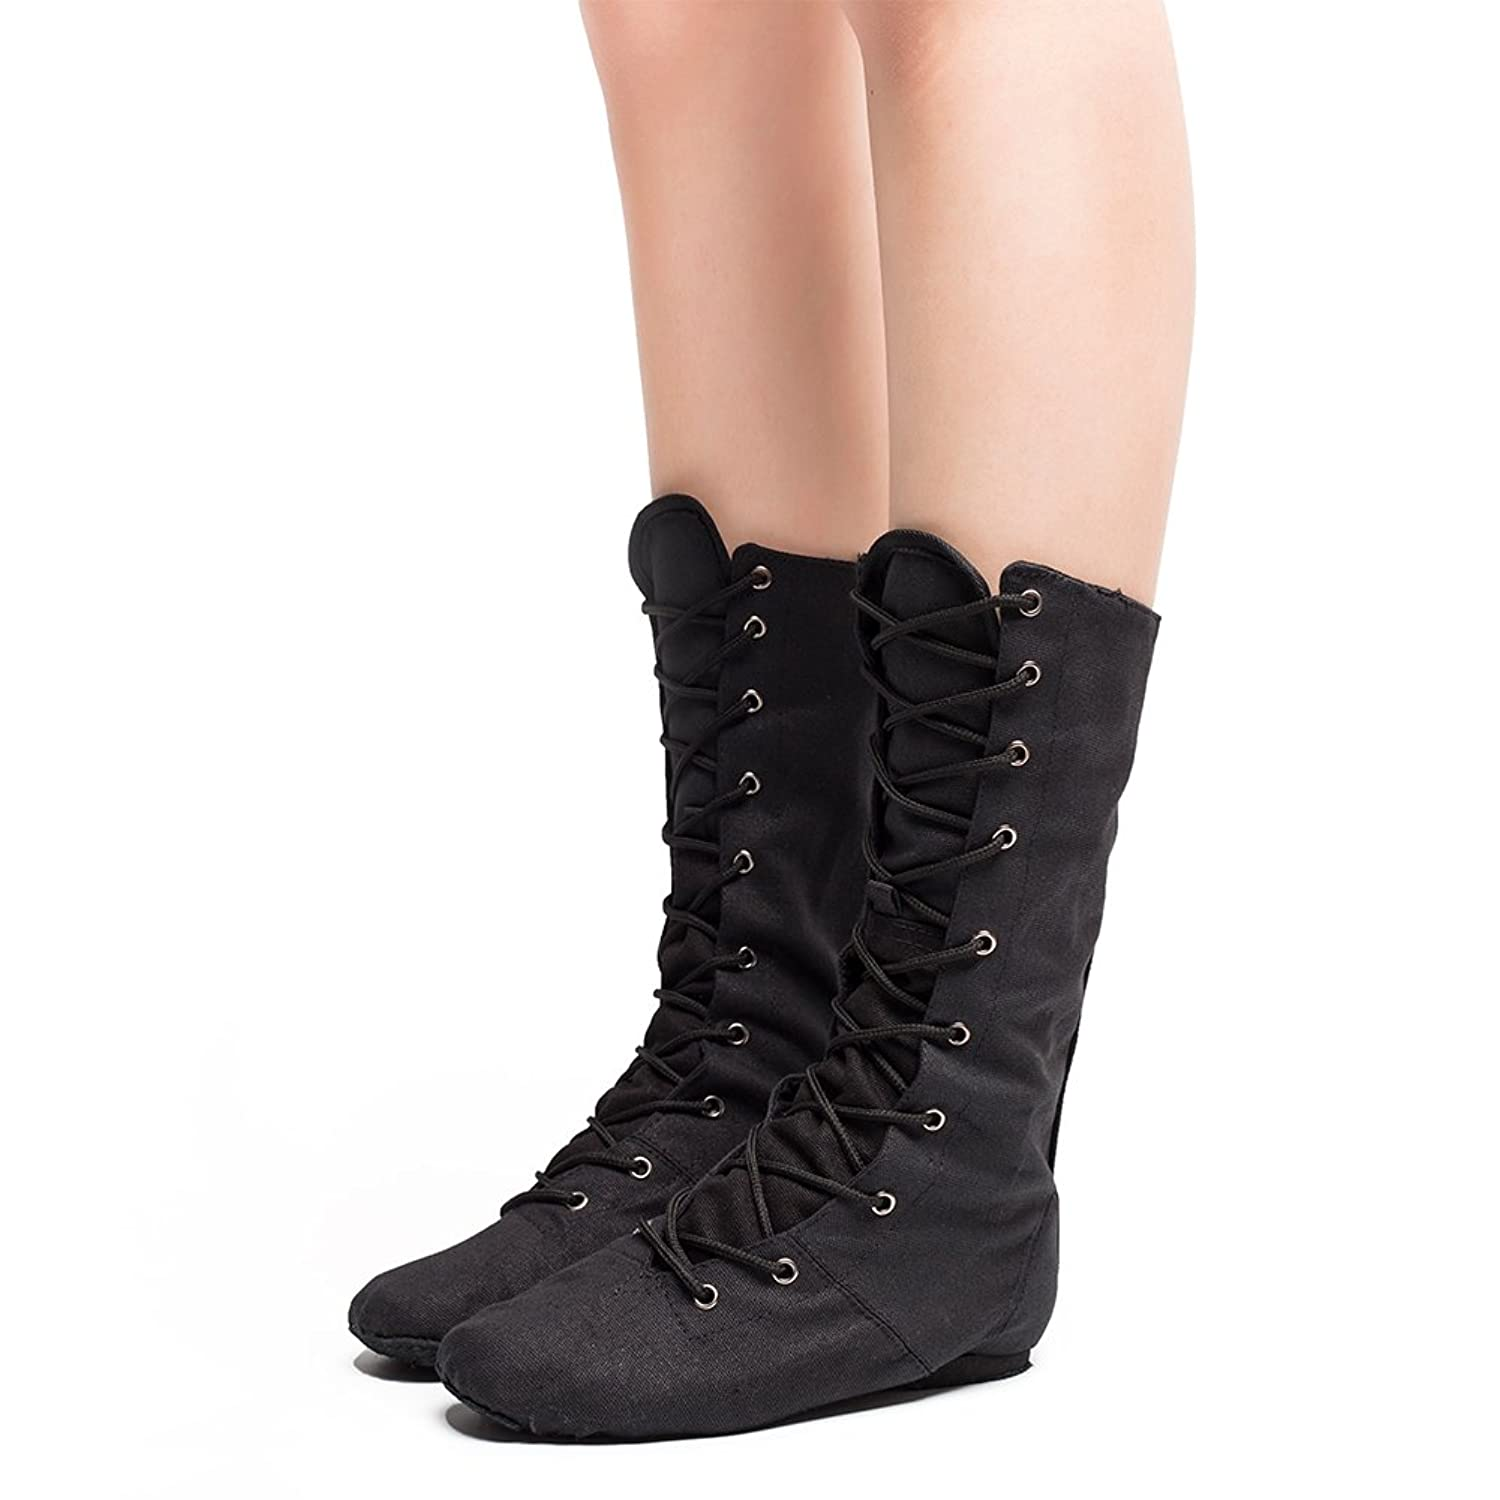 Steampunk Boots & Shoes, Heels & Flats Womens Canvas Cosplay Dance Boots Red/Black/White $29.90 AT vintagedancer.com